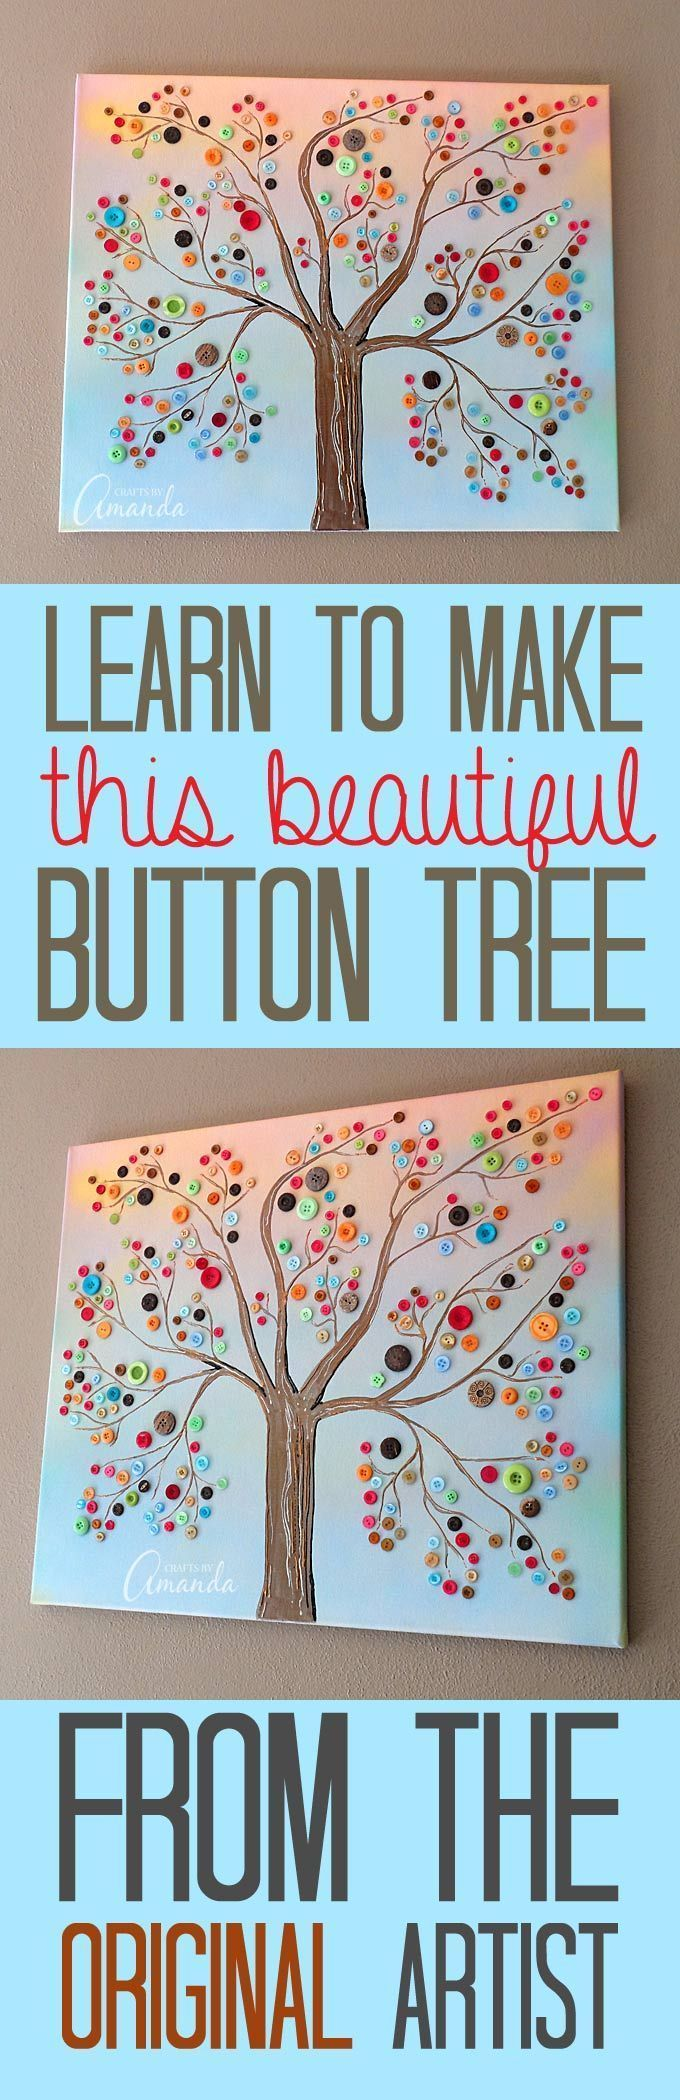 DIY Projects and Crafts Made With Buttons - Vibrant Button Tree On Canvas -  Easy and Quick Projects You Can Make With Buttons - Cool and Creative  Crafts, ...